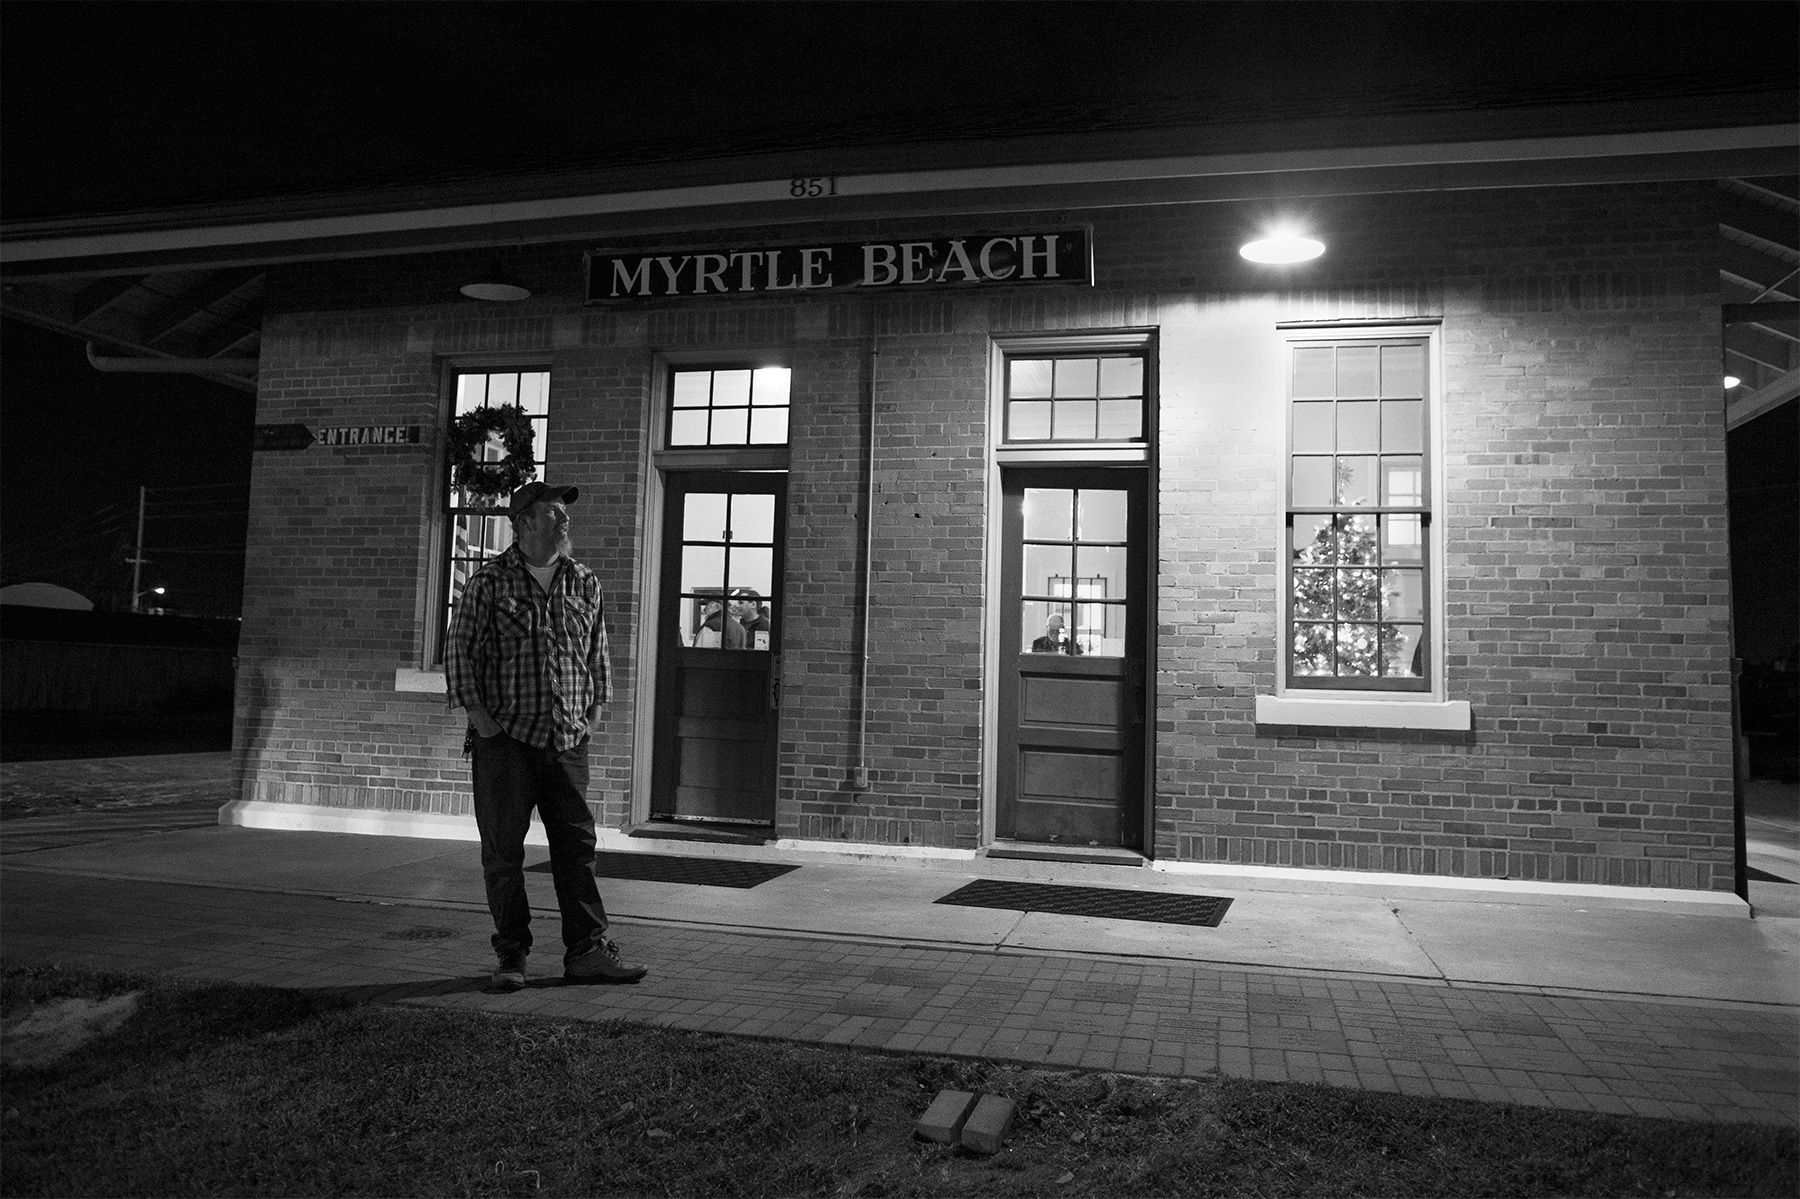 After sound check at the SXSE show on Saturday December 3, 2016, current SXSE president Seth Funderburk takes a break outside the Historic Myrtle Beach Train Depot before the Randall Bramblett show.